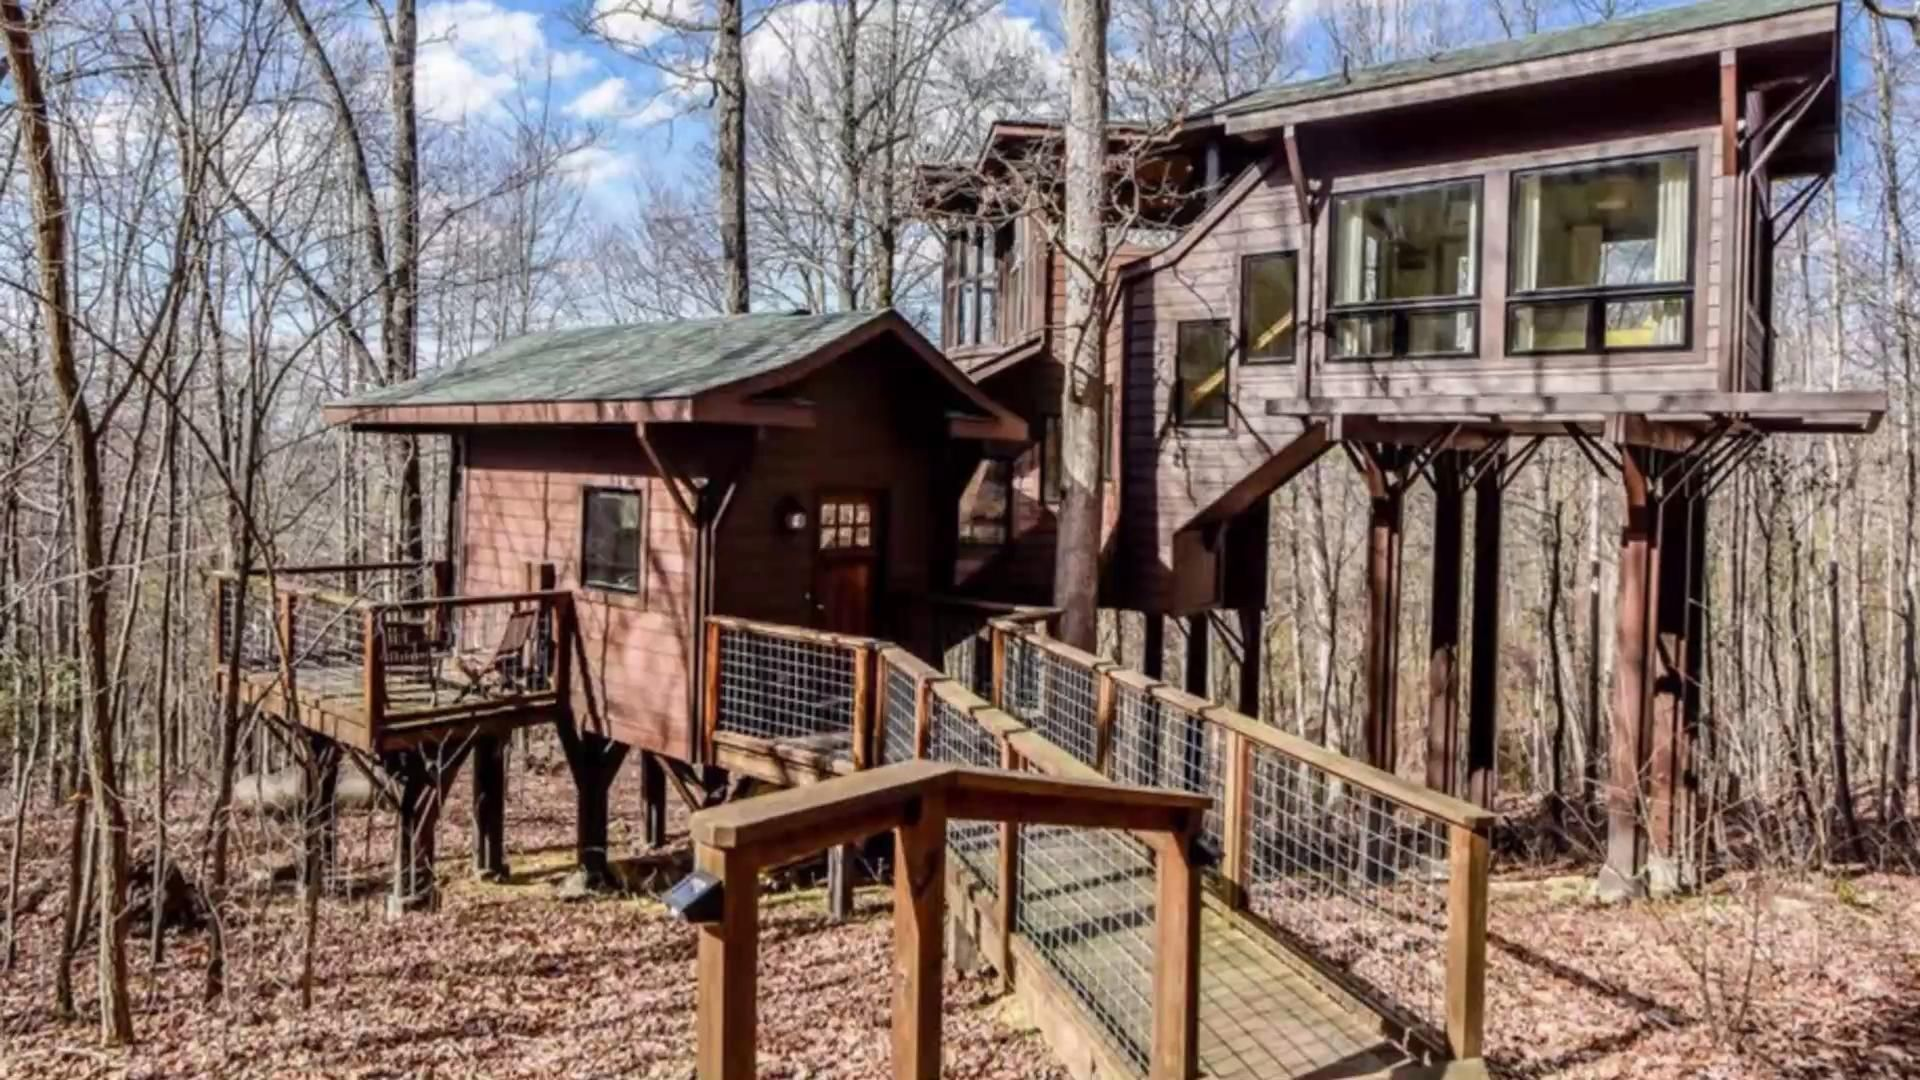 The Best Tennessee Getaways for Spring Tree house